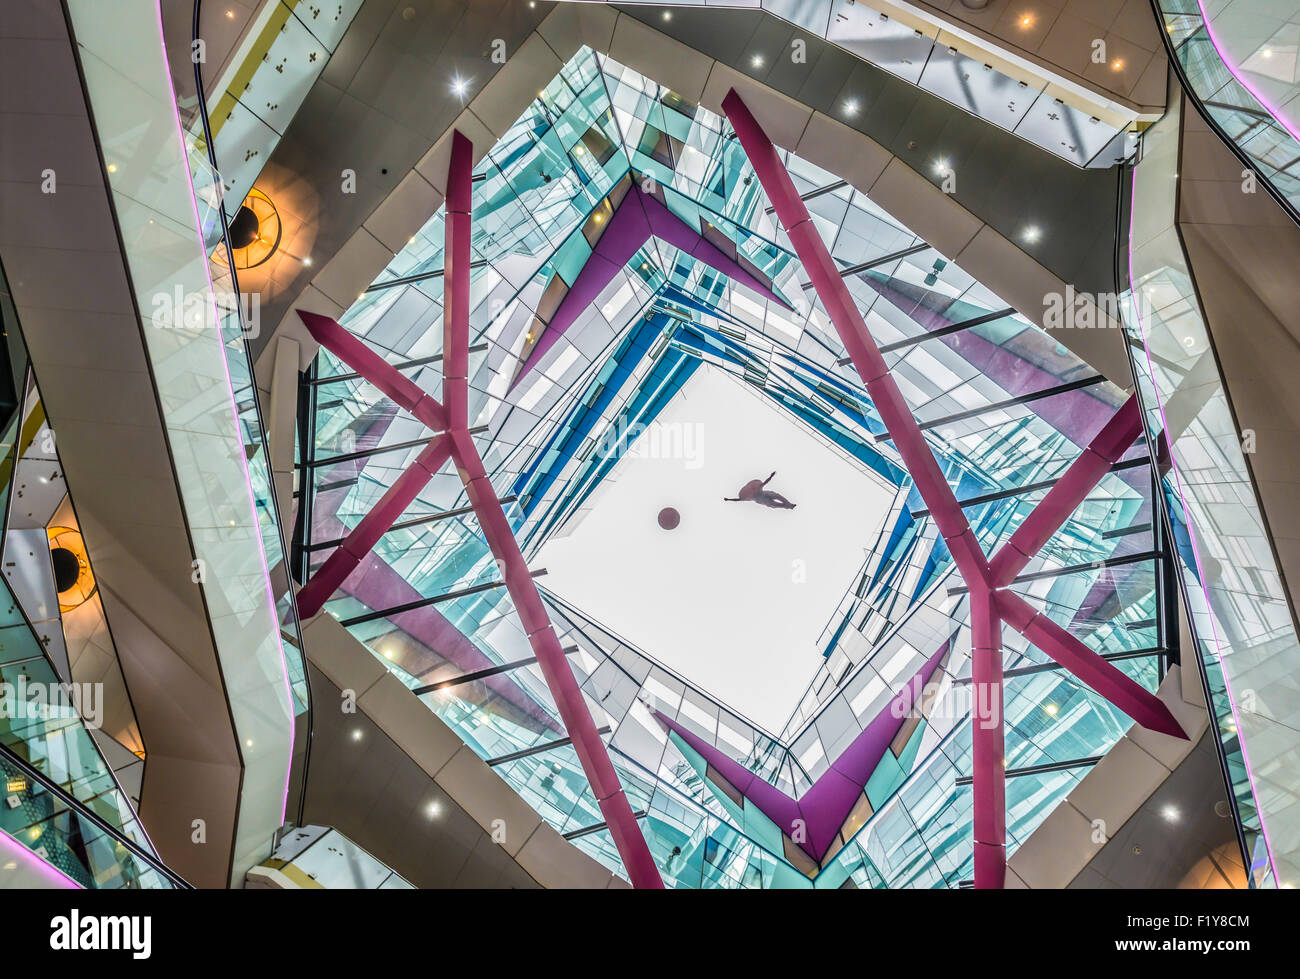 Cube Interiors Of The Cube Interiors Birmingham Stock Photo Royalty Free Image 87265828 Alamy